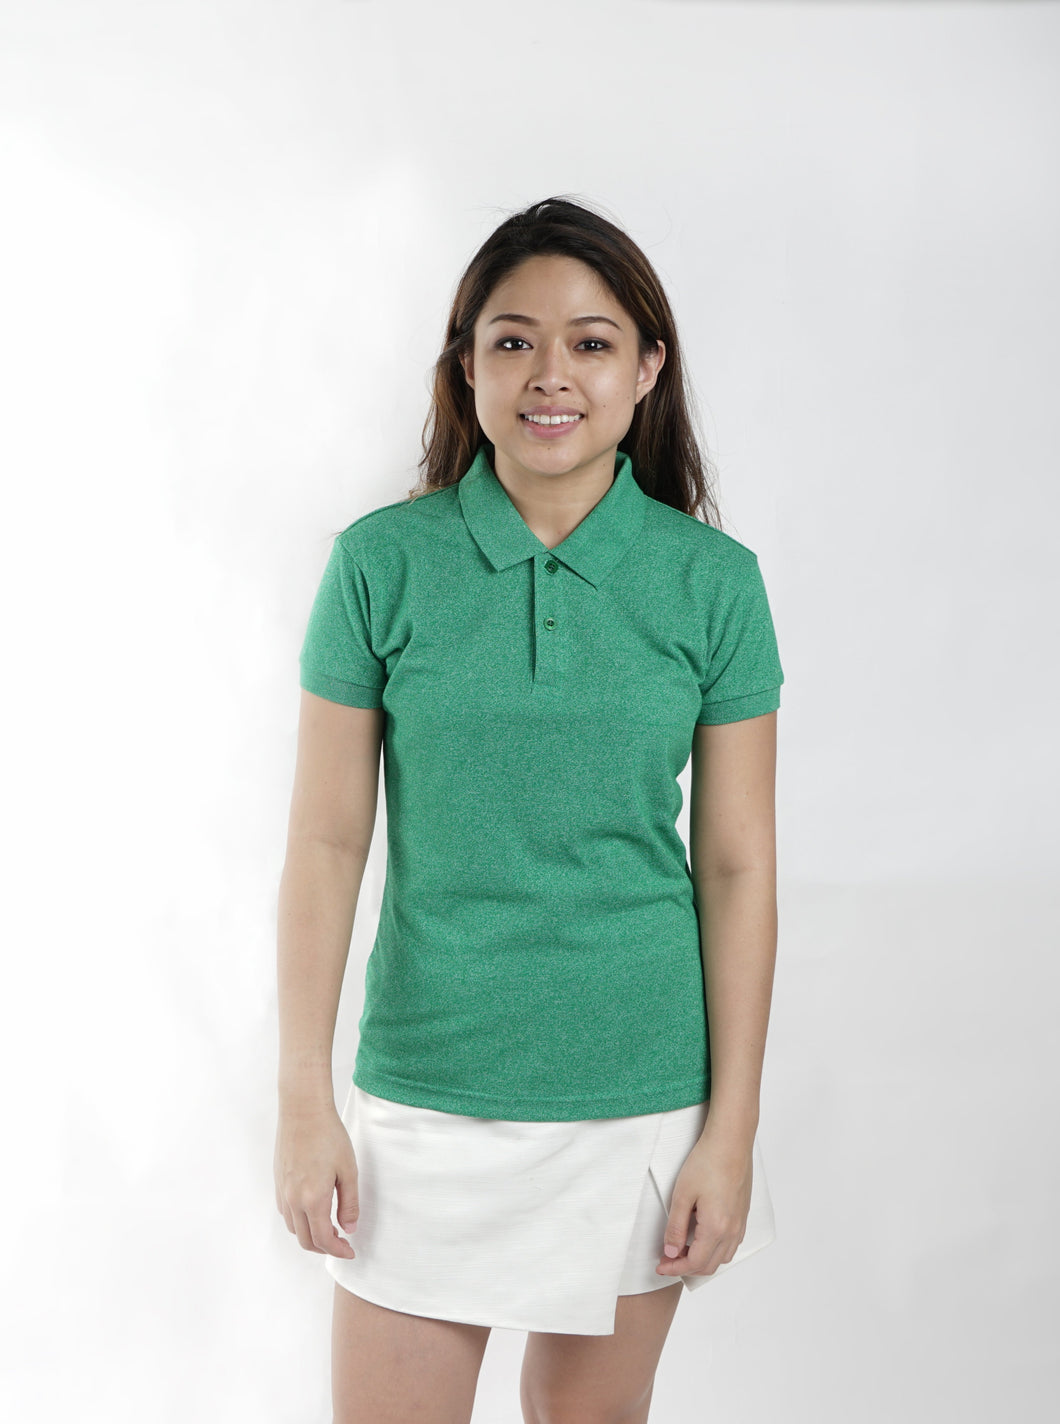 Acid Energy Green Classique Plain Women's Polo Shirt